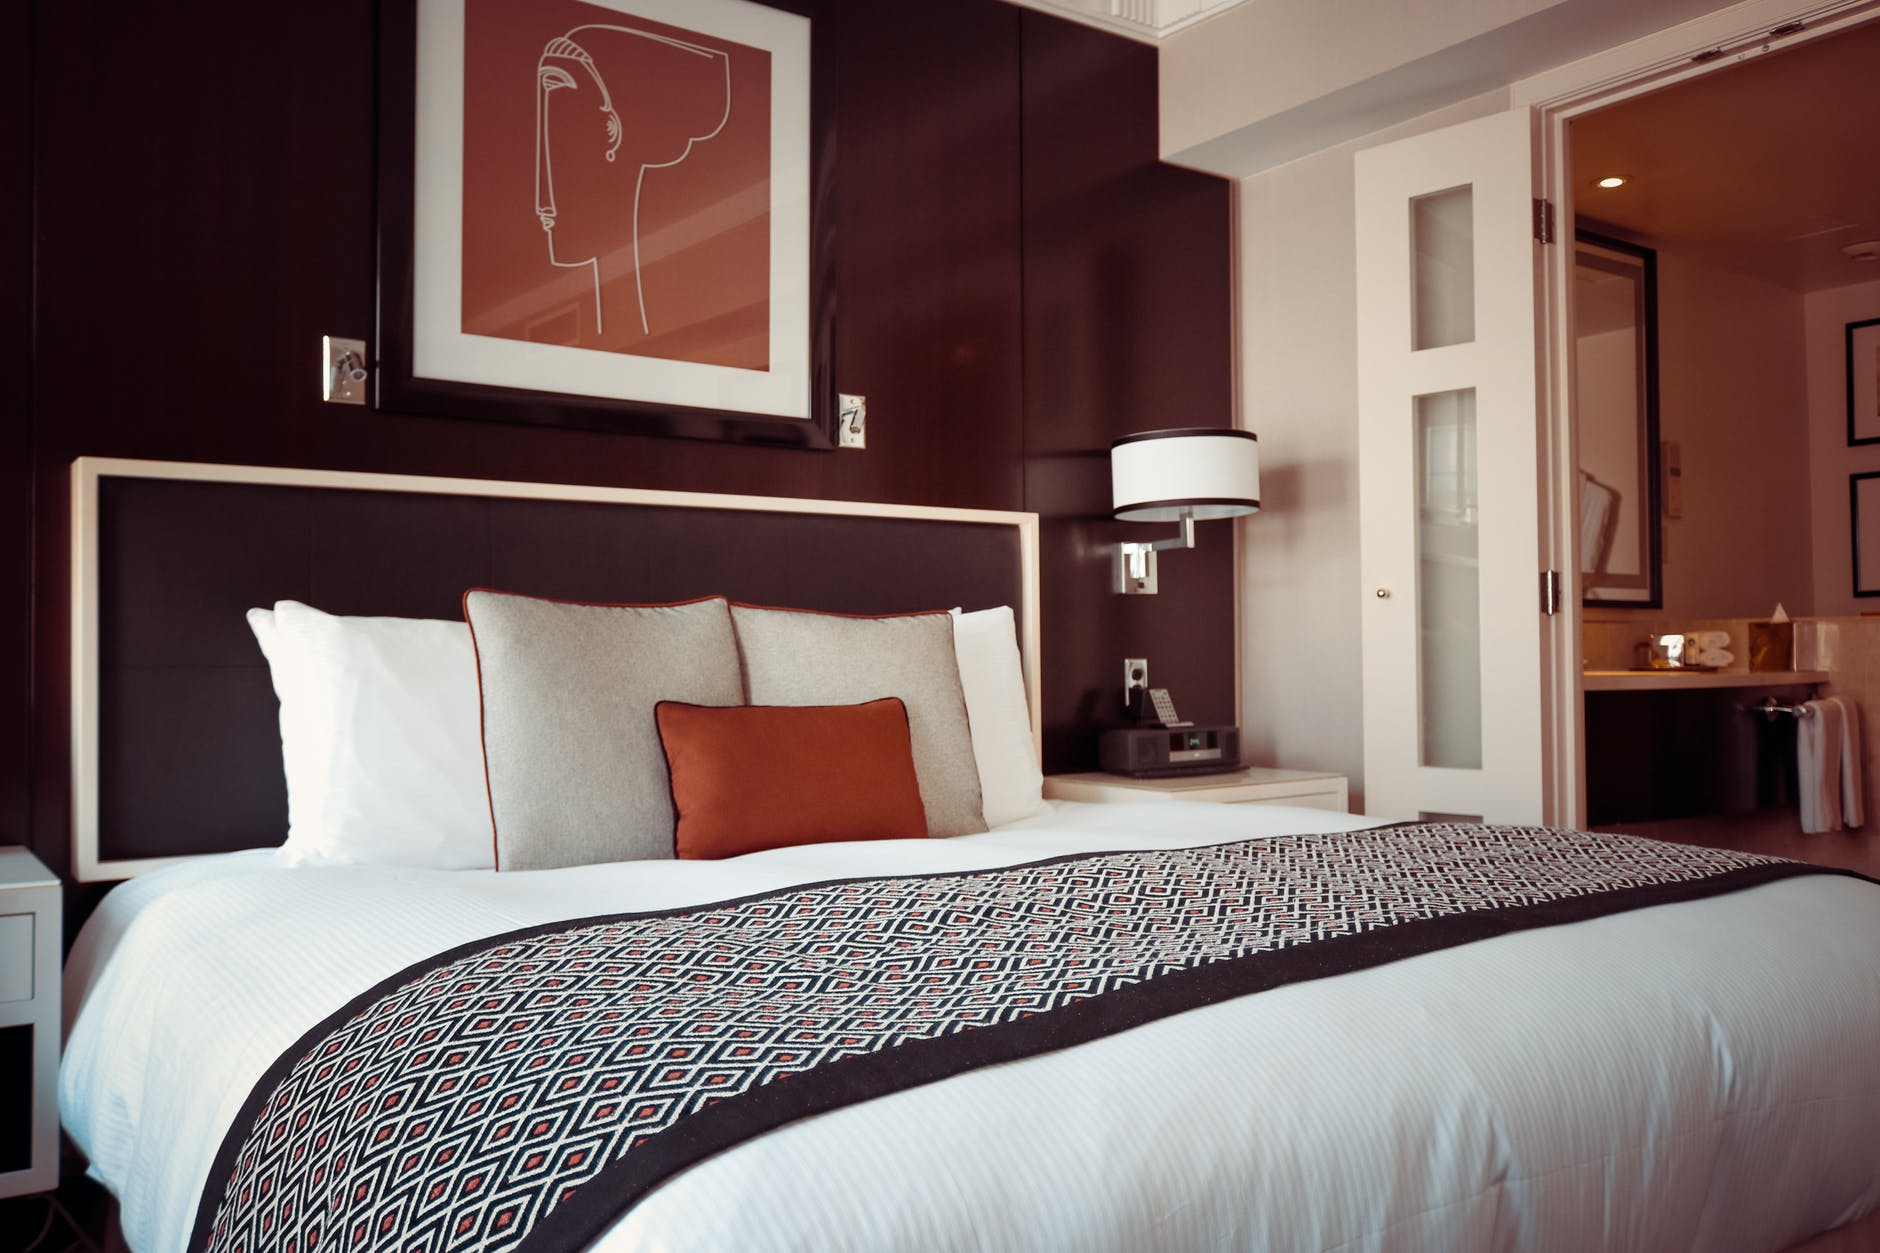 6 Hotel Housekeeping and Cleaning Tips to Always Keep in Mind